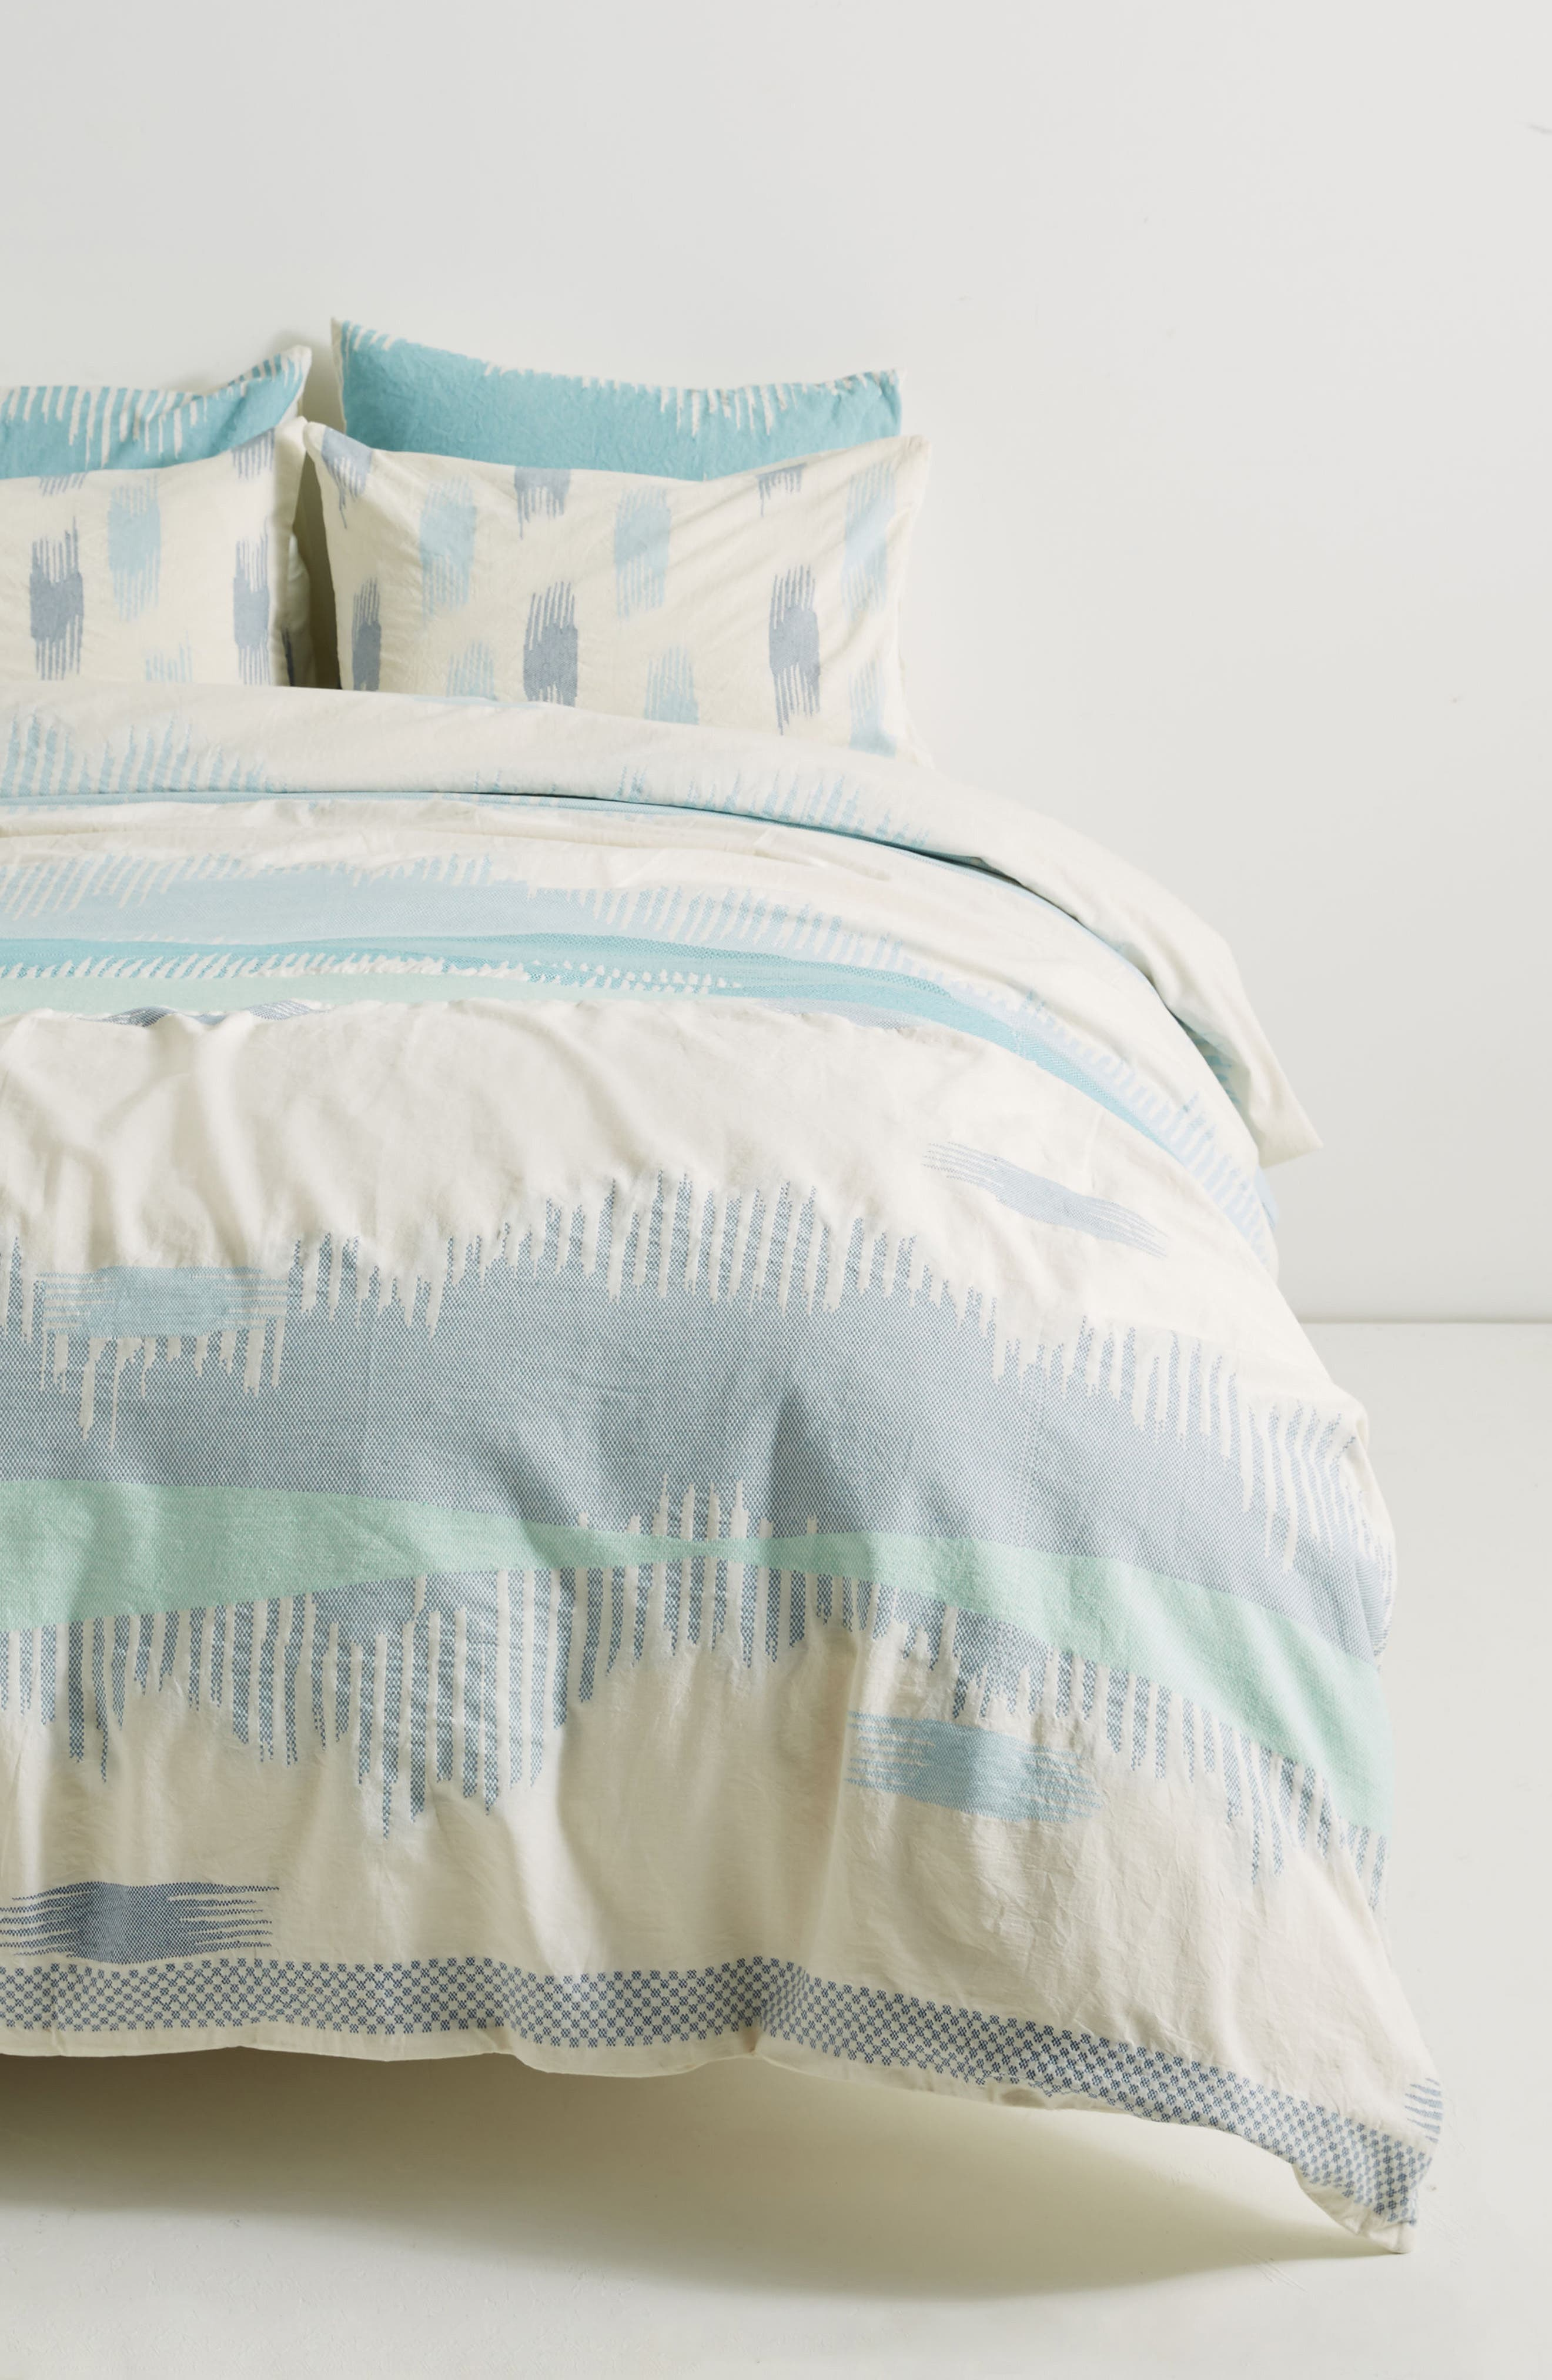 Woven Calera Duvet Cover,                             Main thumbnail 1, color,                             Blue